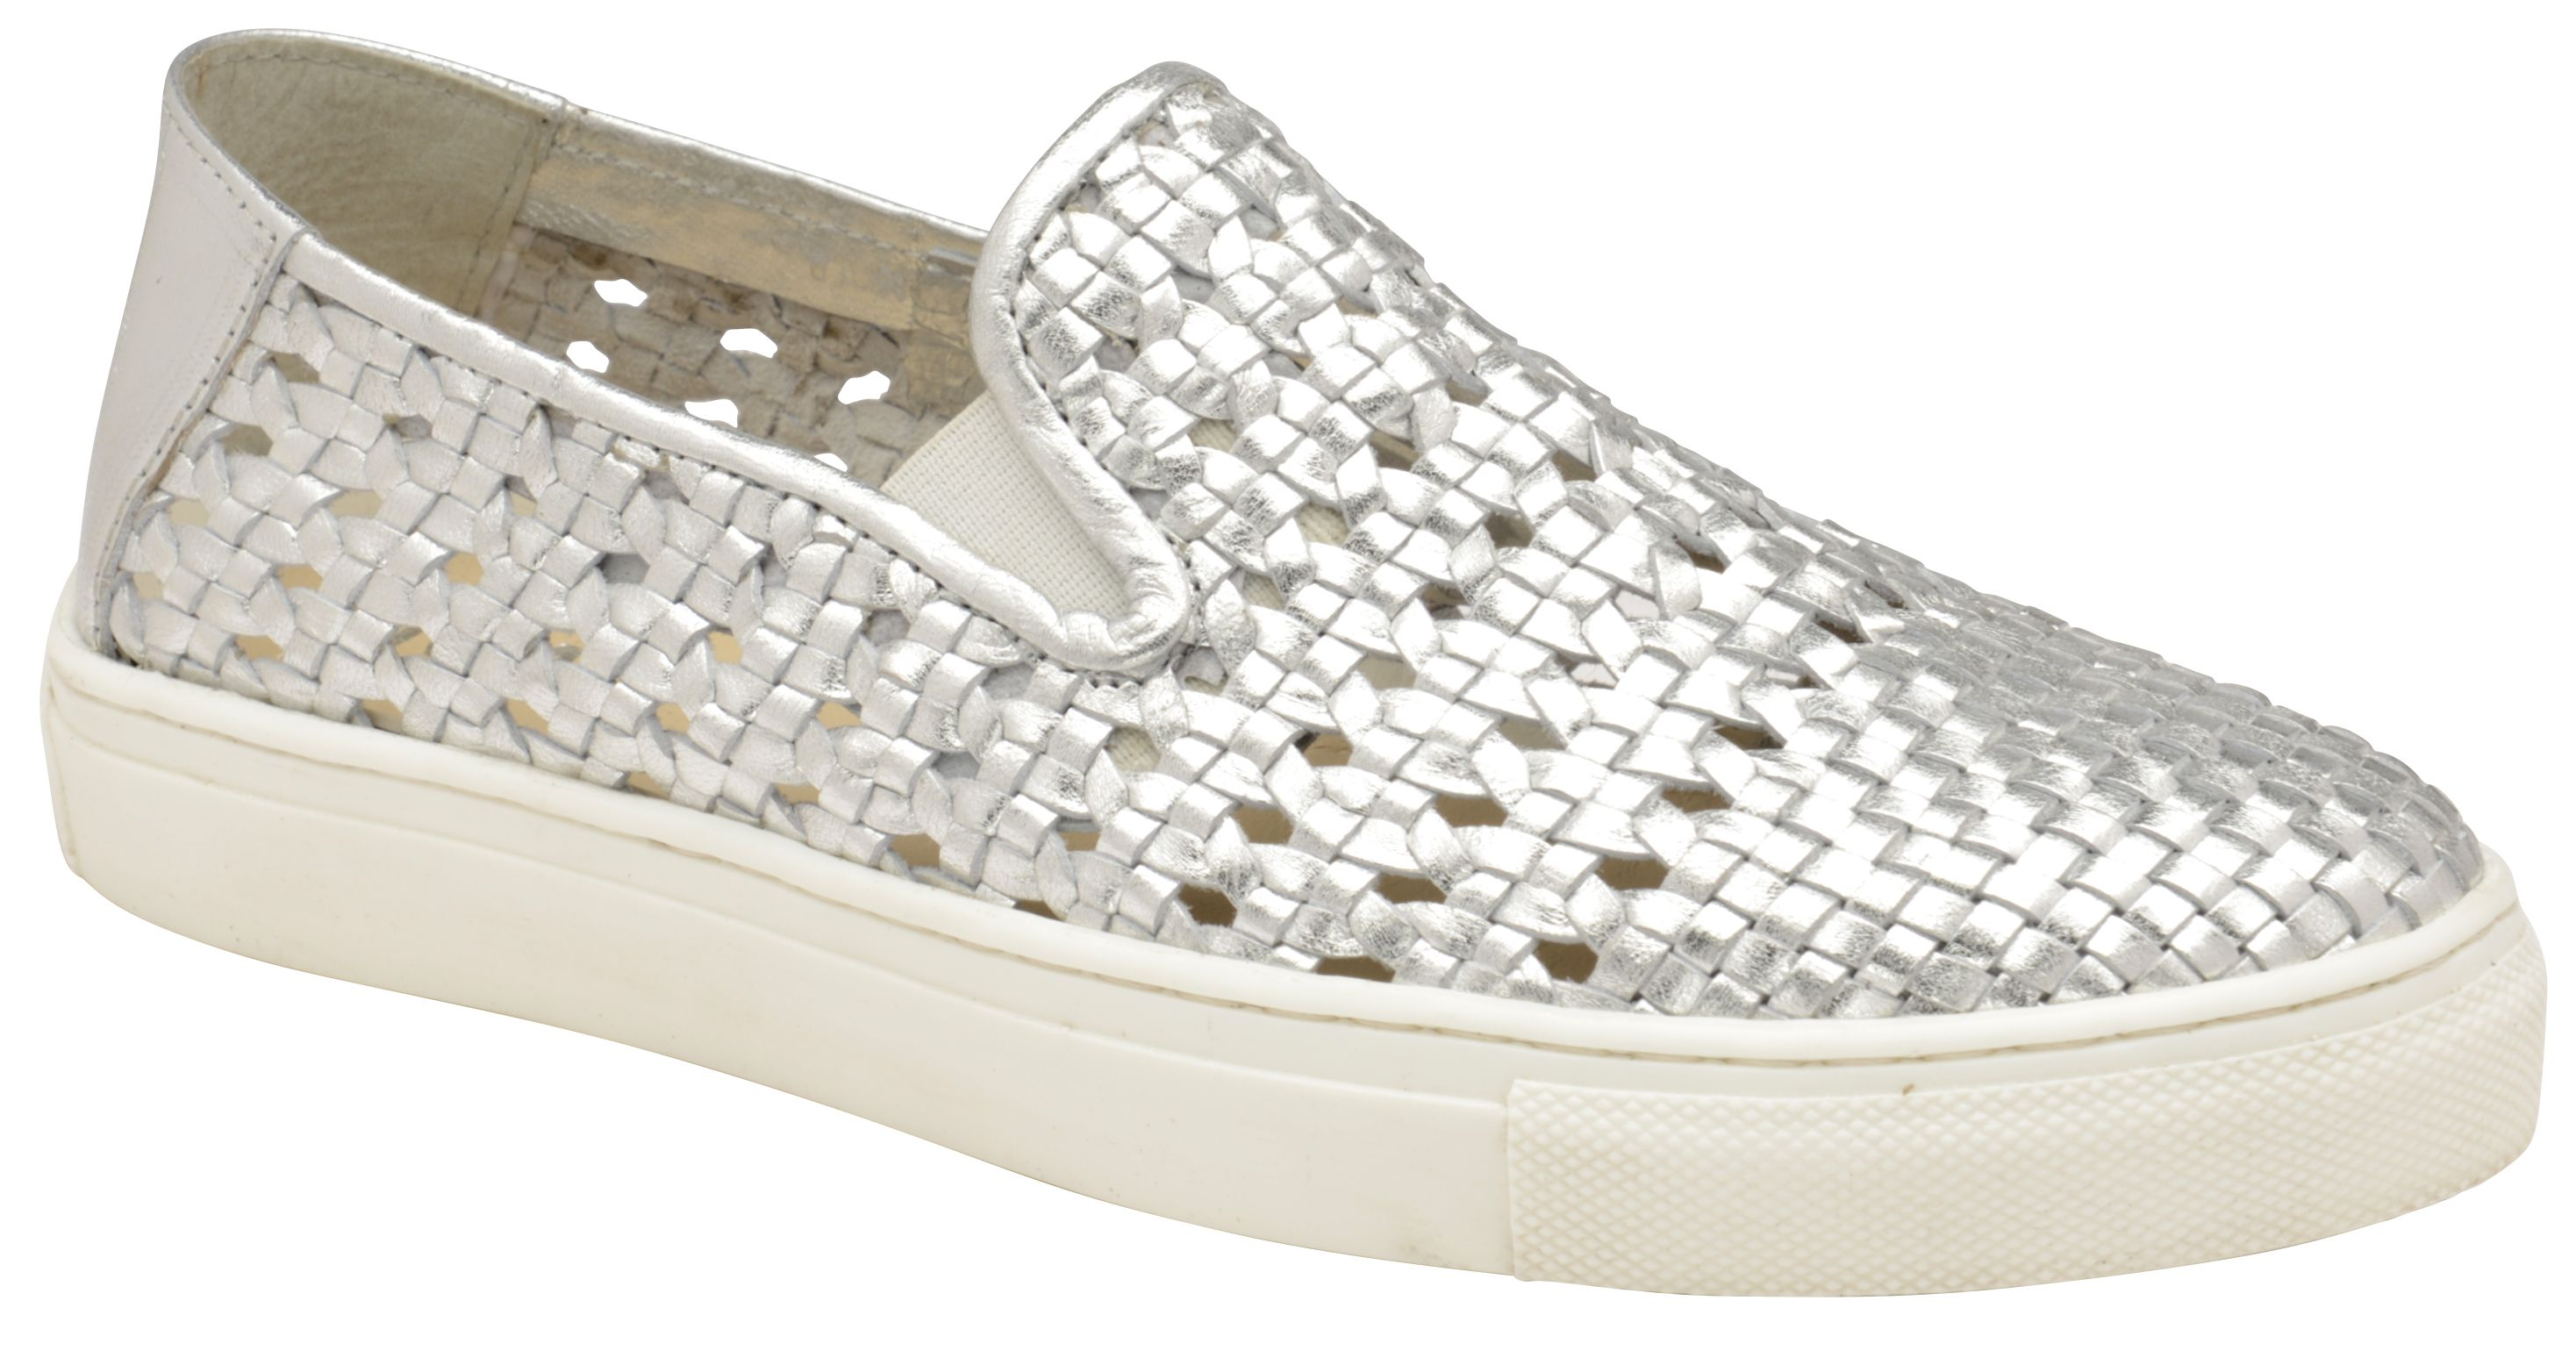 Ravel Ferndale Casual Shoes, Silverlic Silver